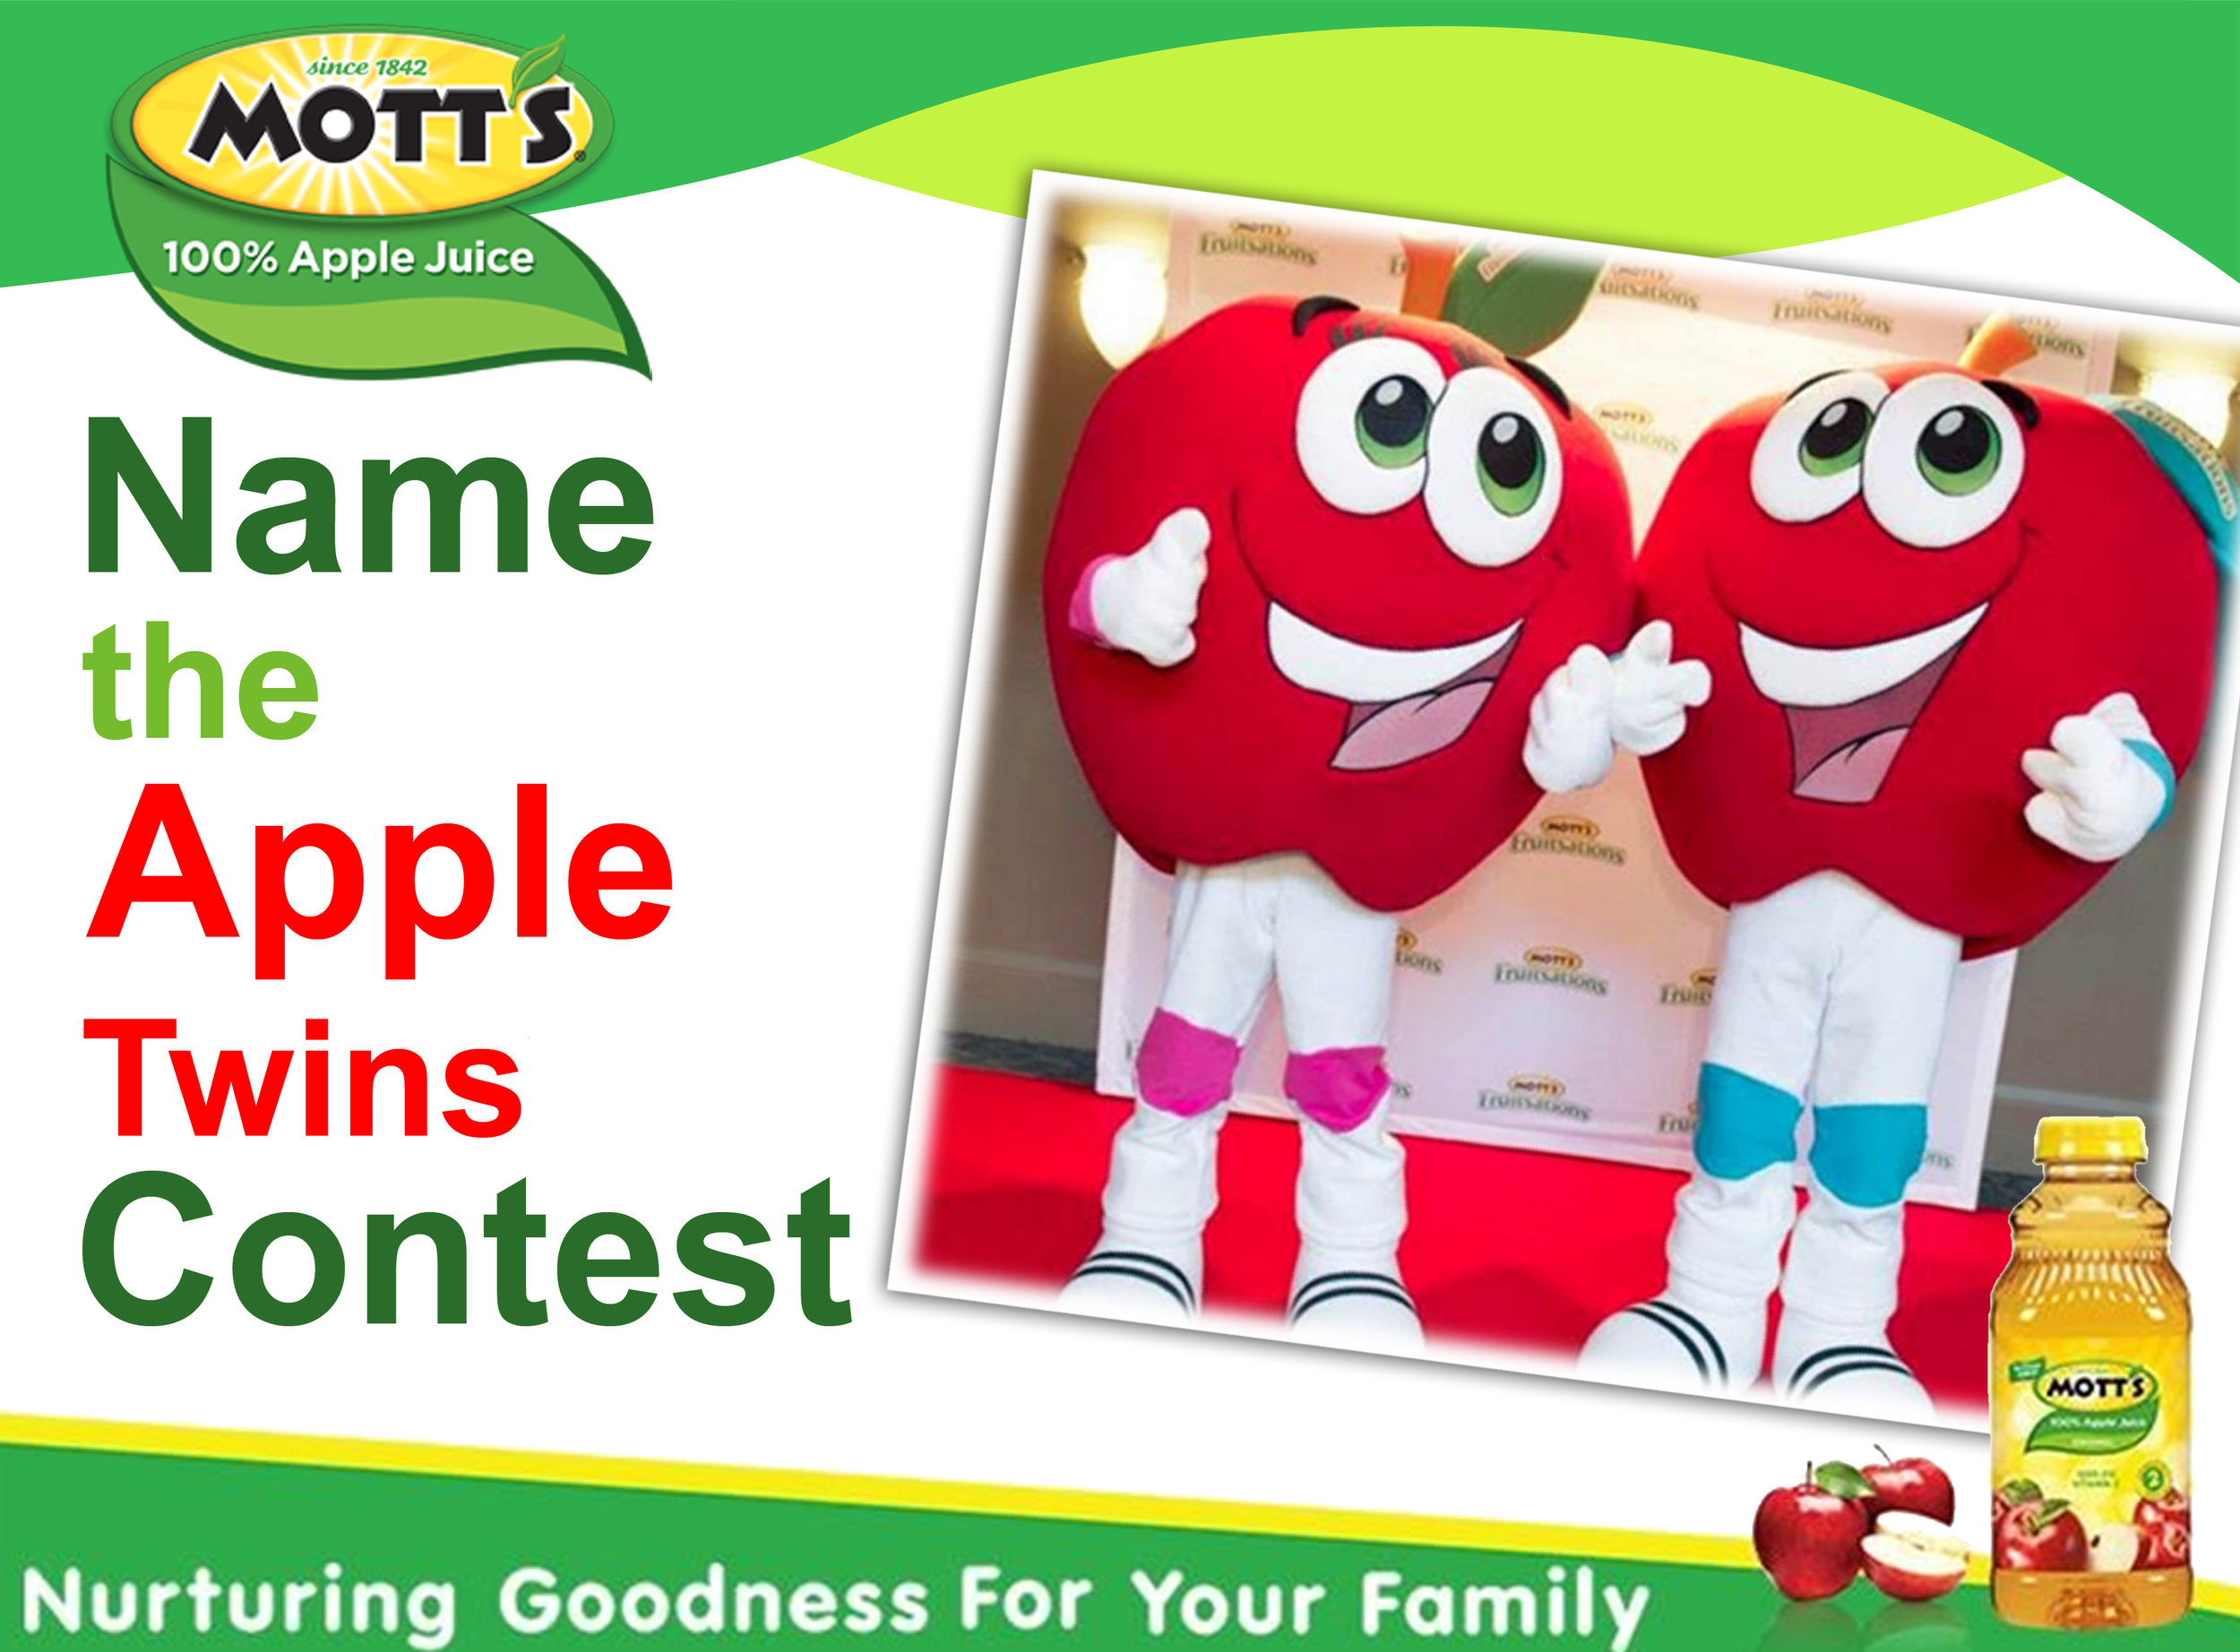 Motts-Name-the-Apple-Twins-Contest.jpg